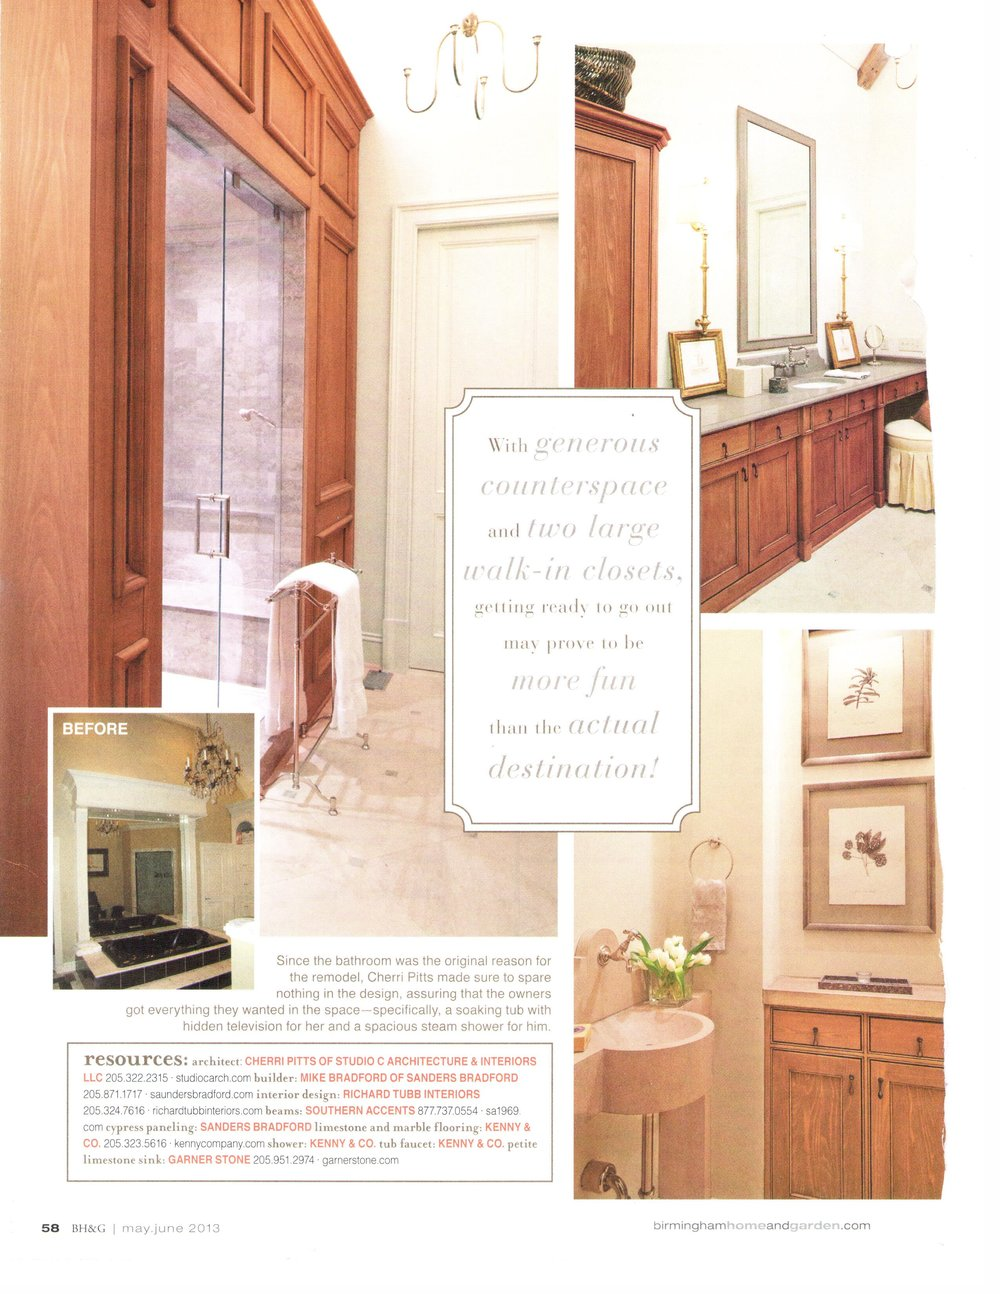 B'Ham Home & Garden Suite Upgrade magazine page 3 architecture exterior and interior design